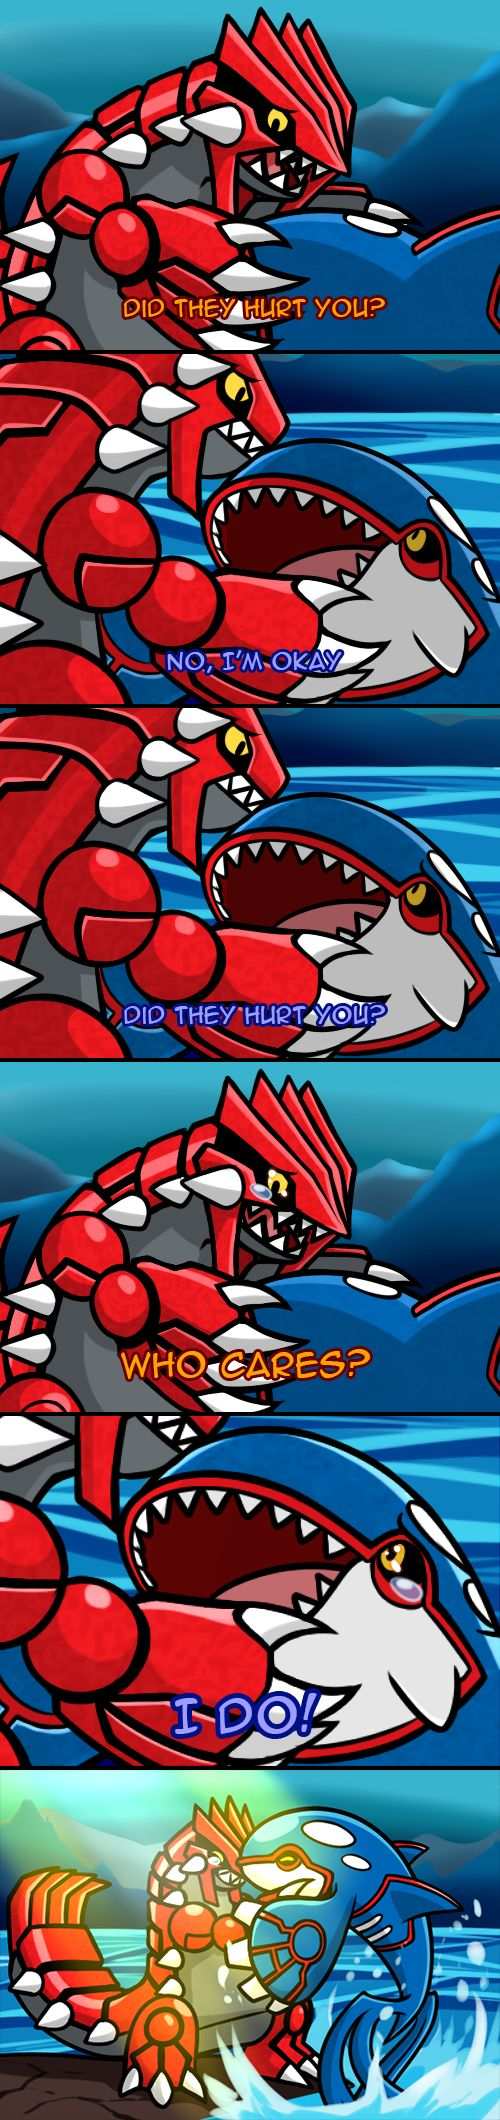 Pokemon ORAS: Jail Break by Mgx0.deviantart.com on @DeviantArt